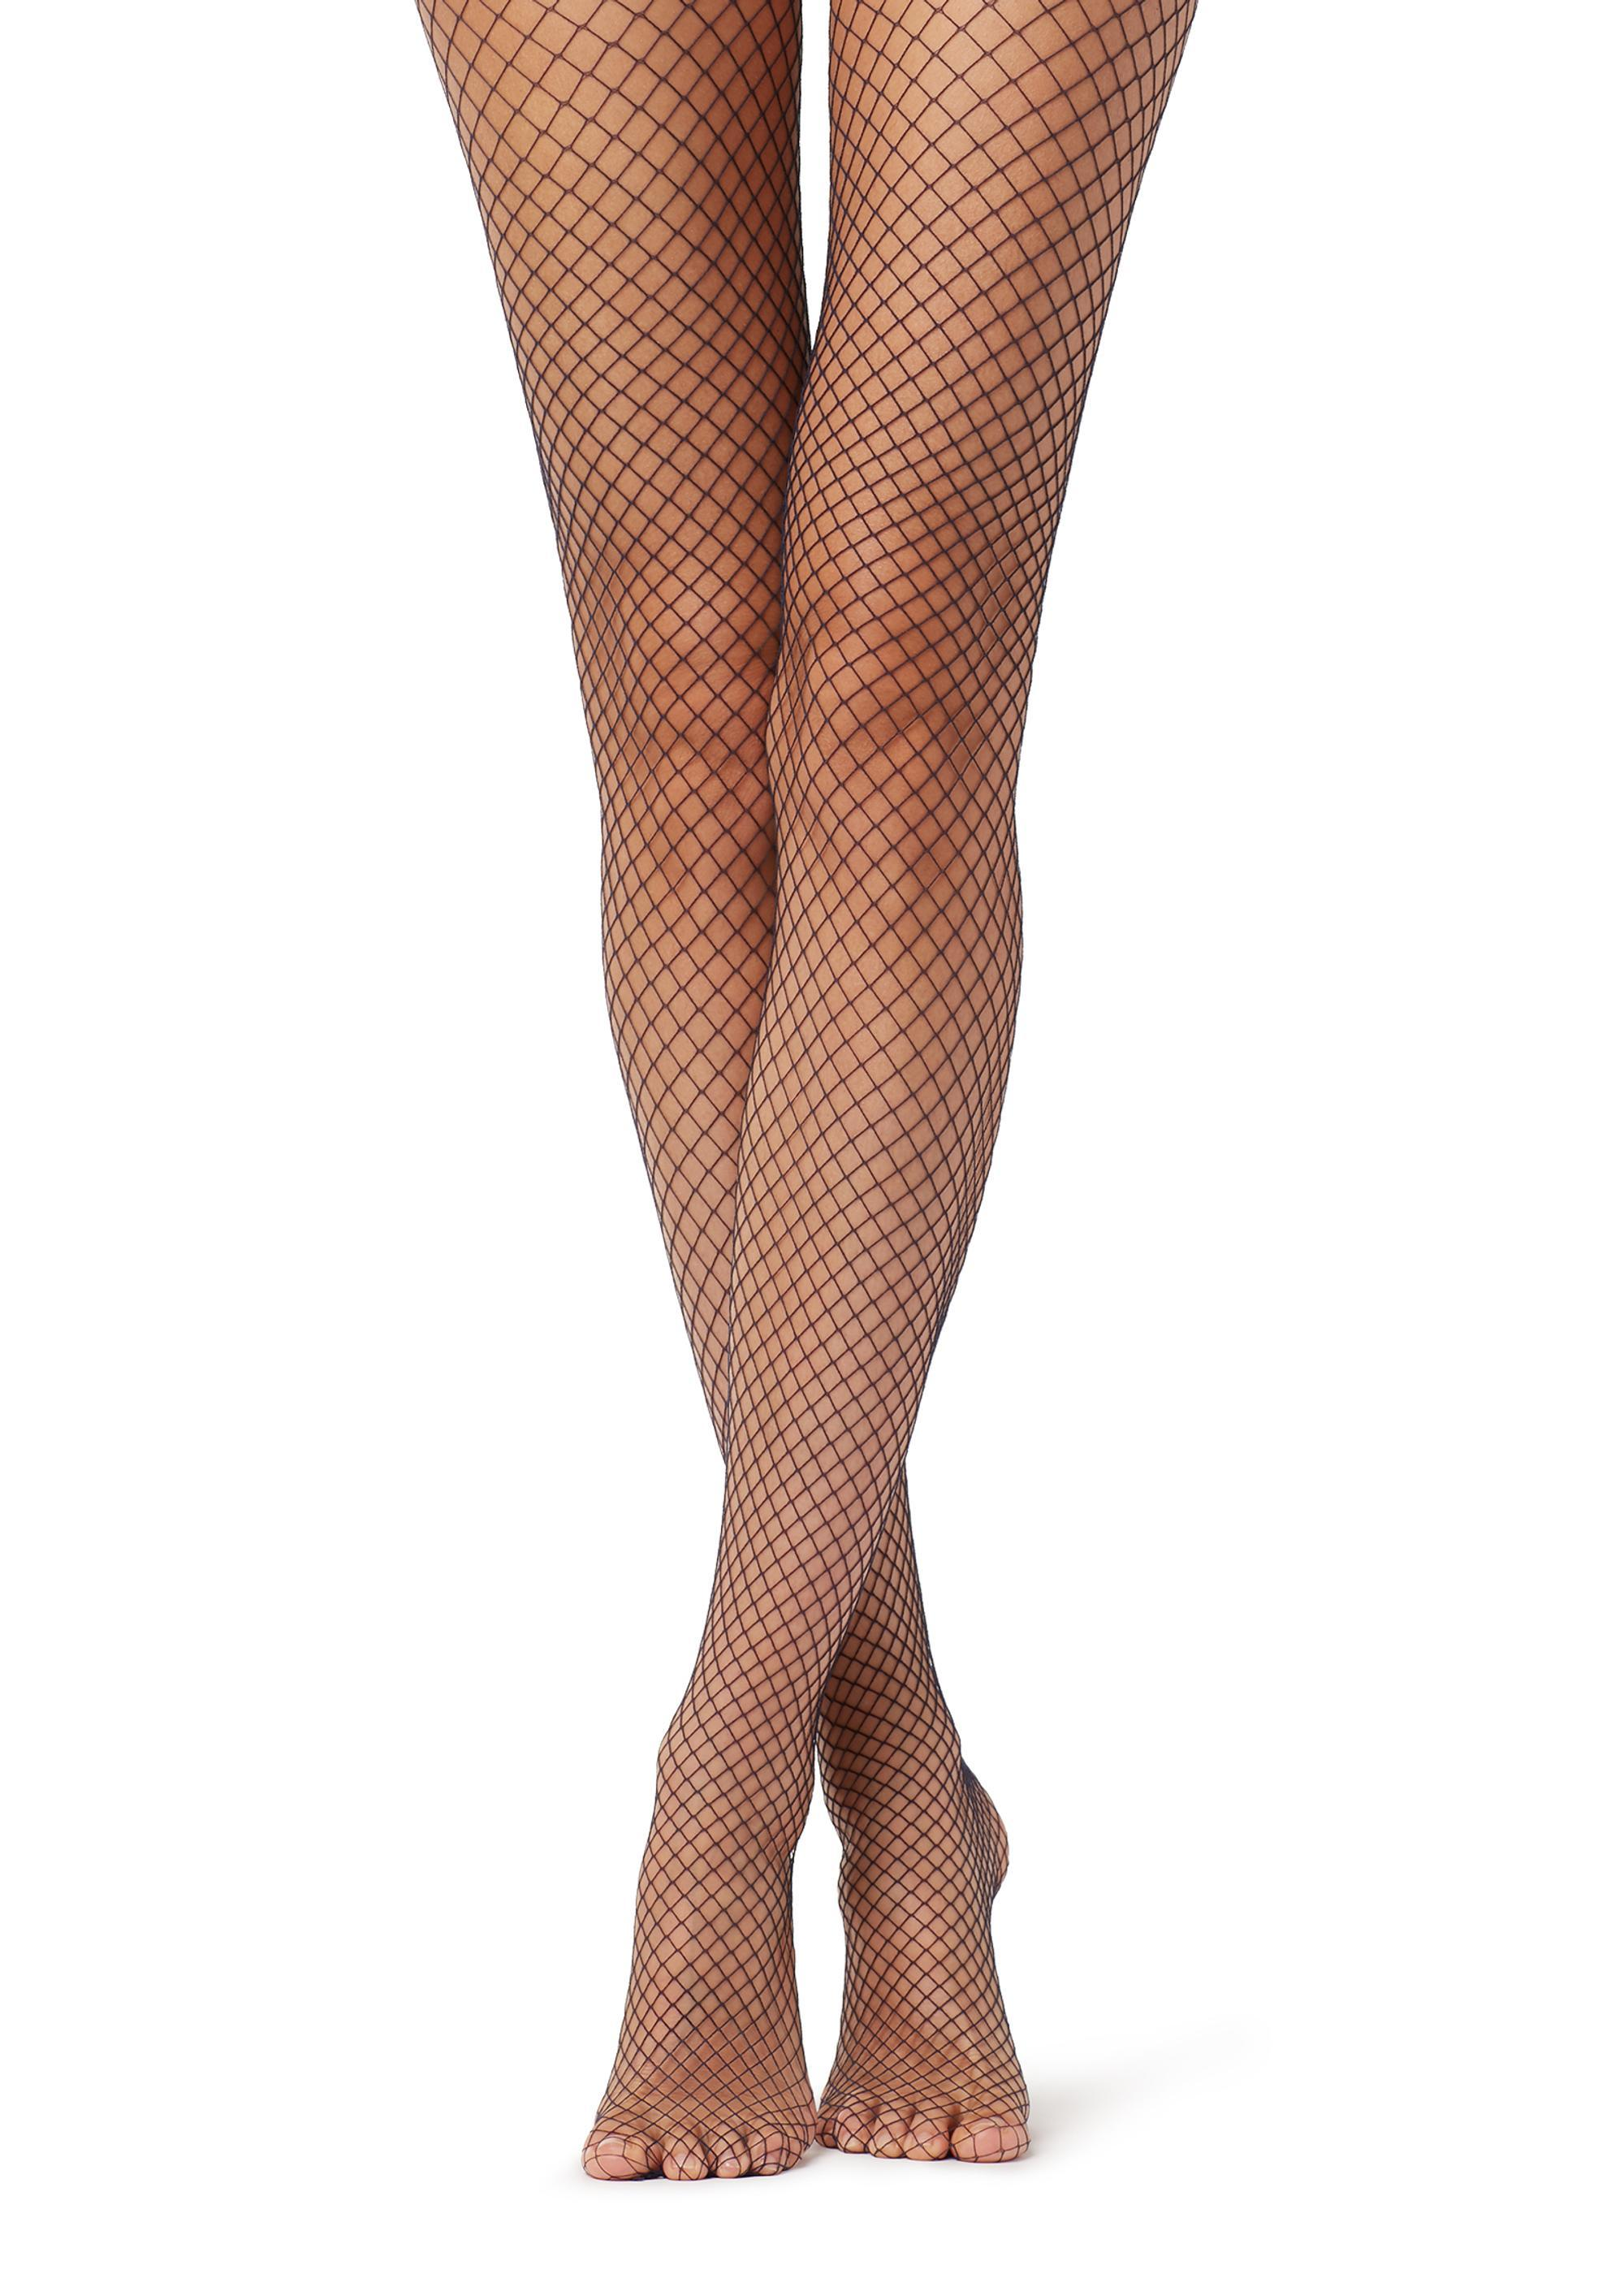 Free site fishnet pantyhose